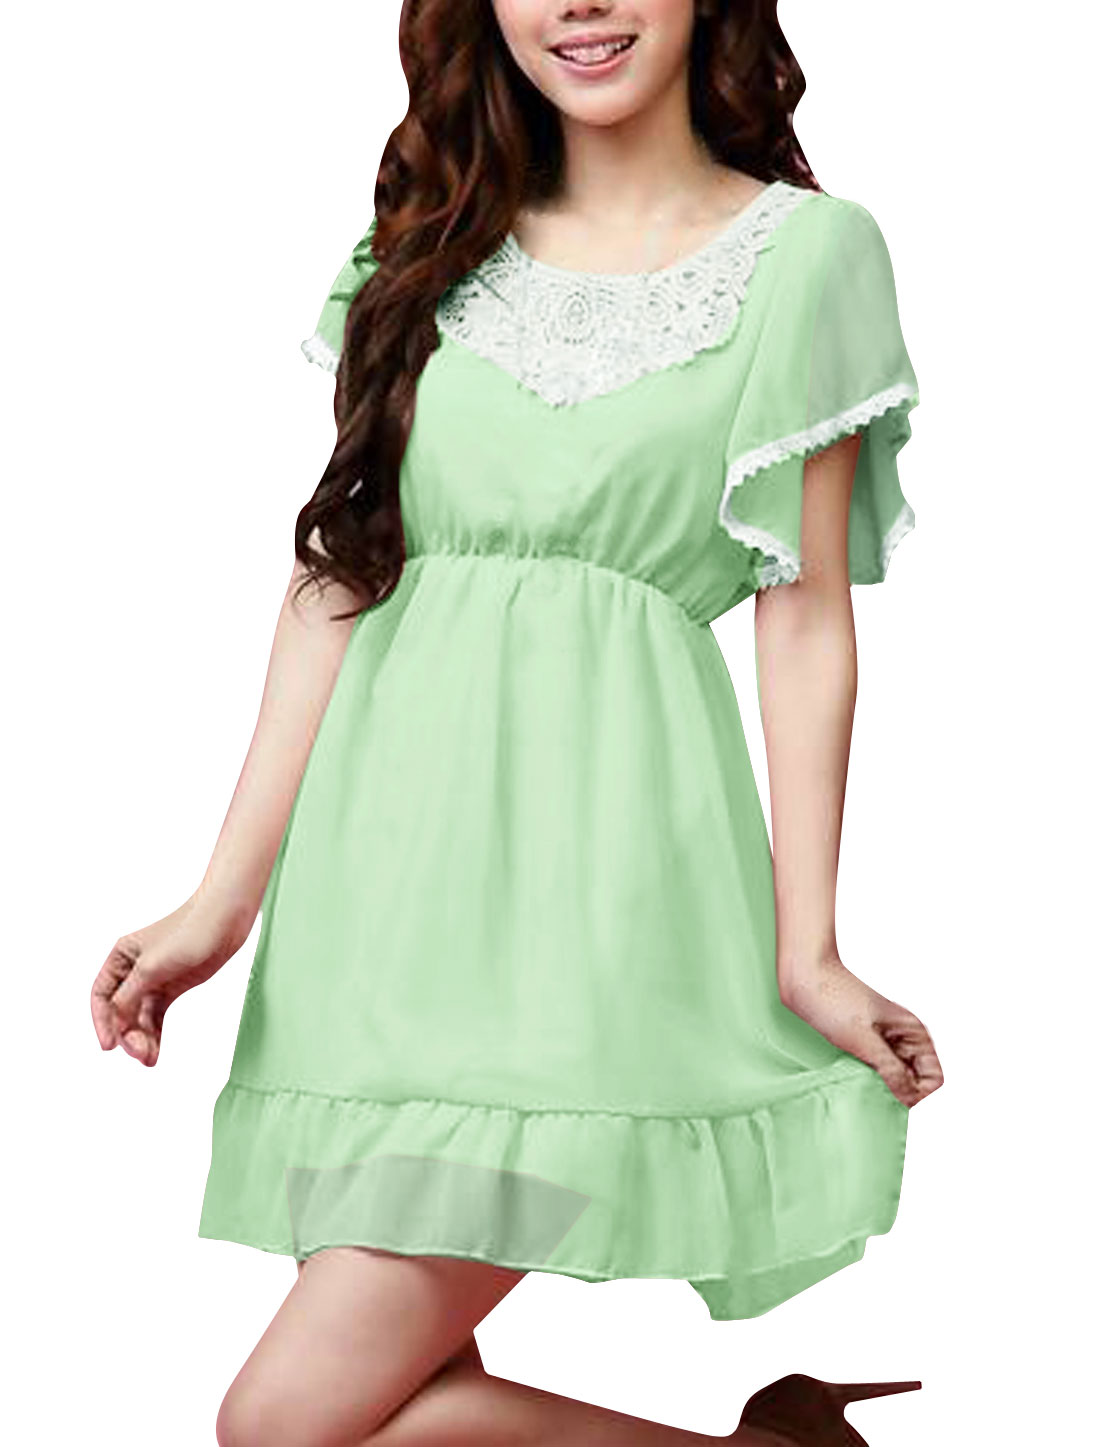 Ladies NEW Light Green Crochet Splice Front Scoop Neck Mini Dress S